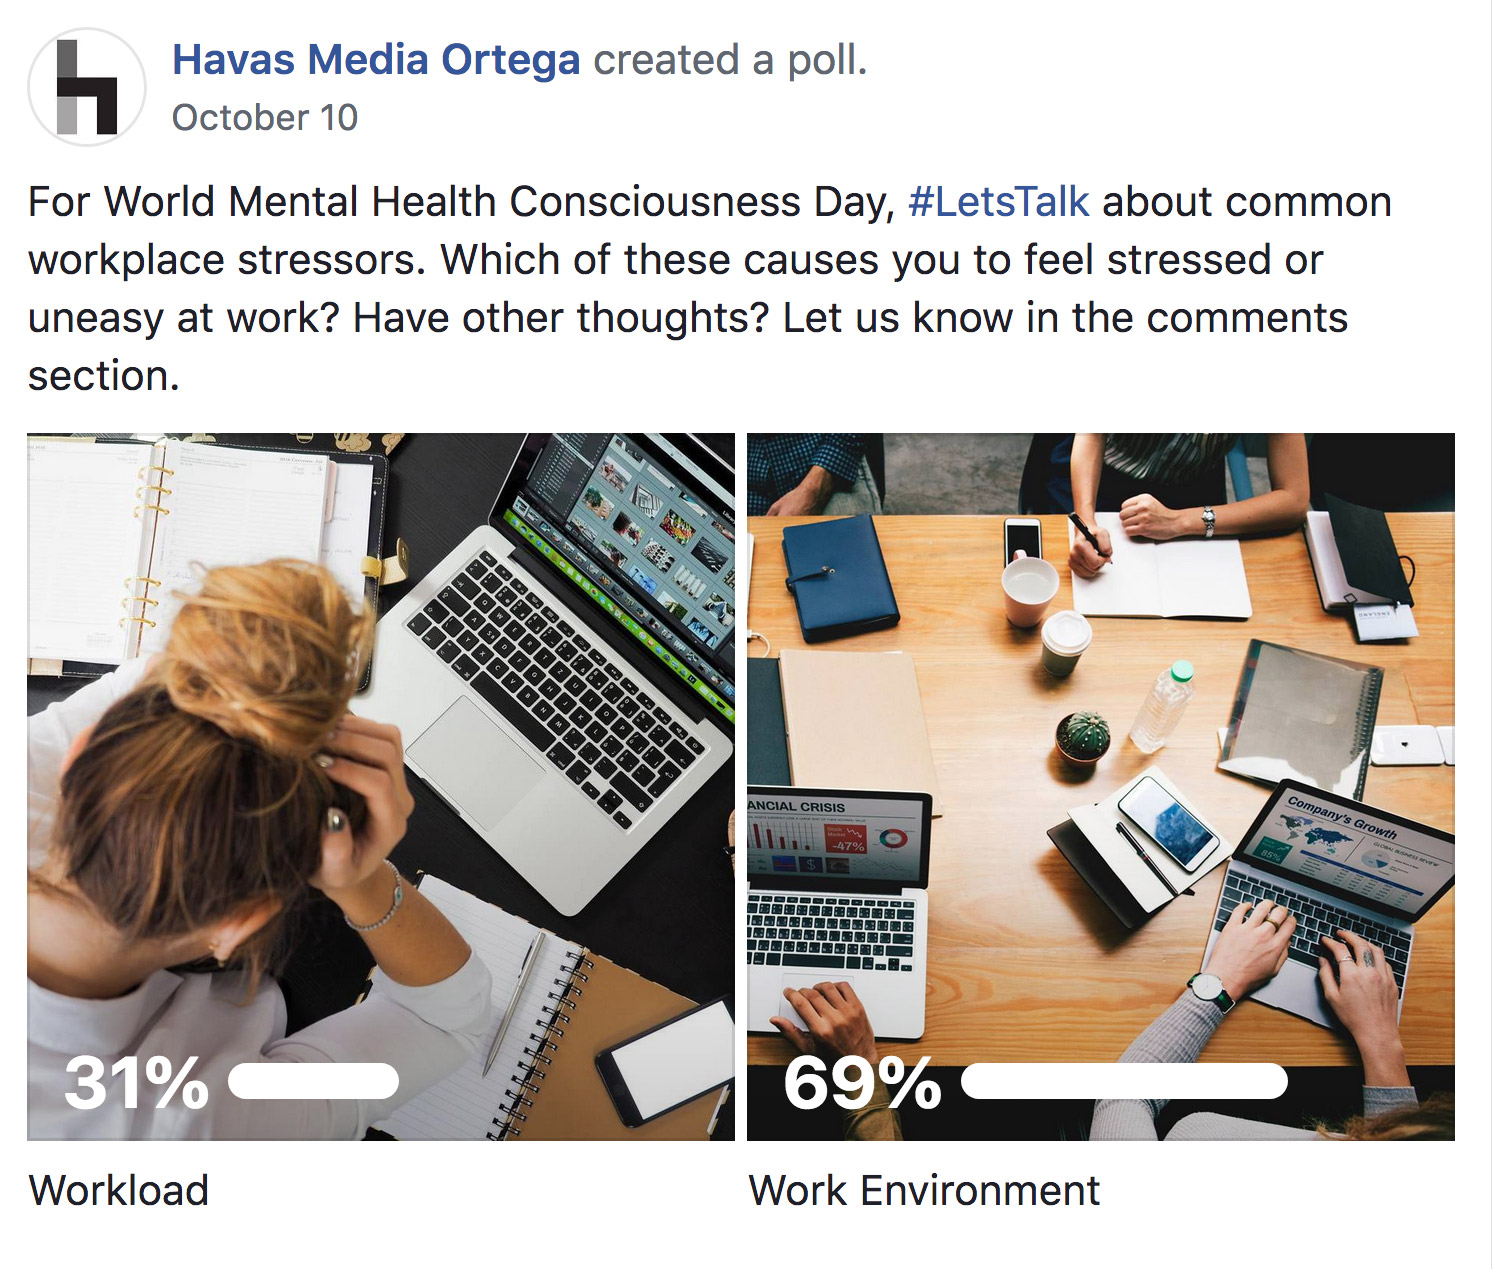 A screenshot of a Facebook poll asking: Which of these causes you to feel stressed or uneasy at work? Out of the two choices, 31% say workload, while 69% say work environment.